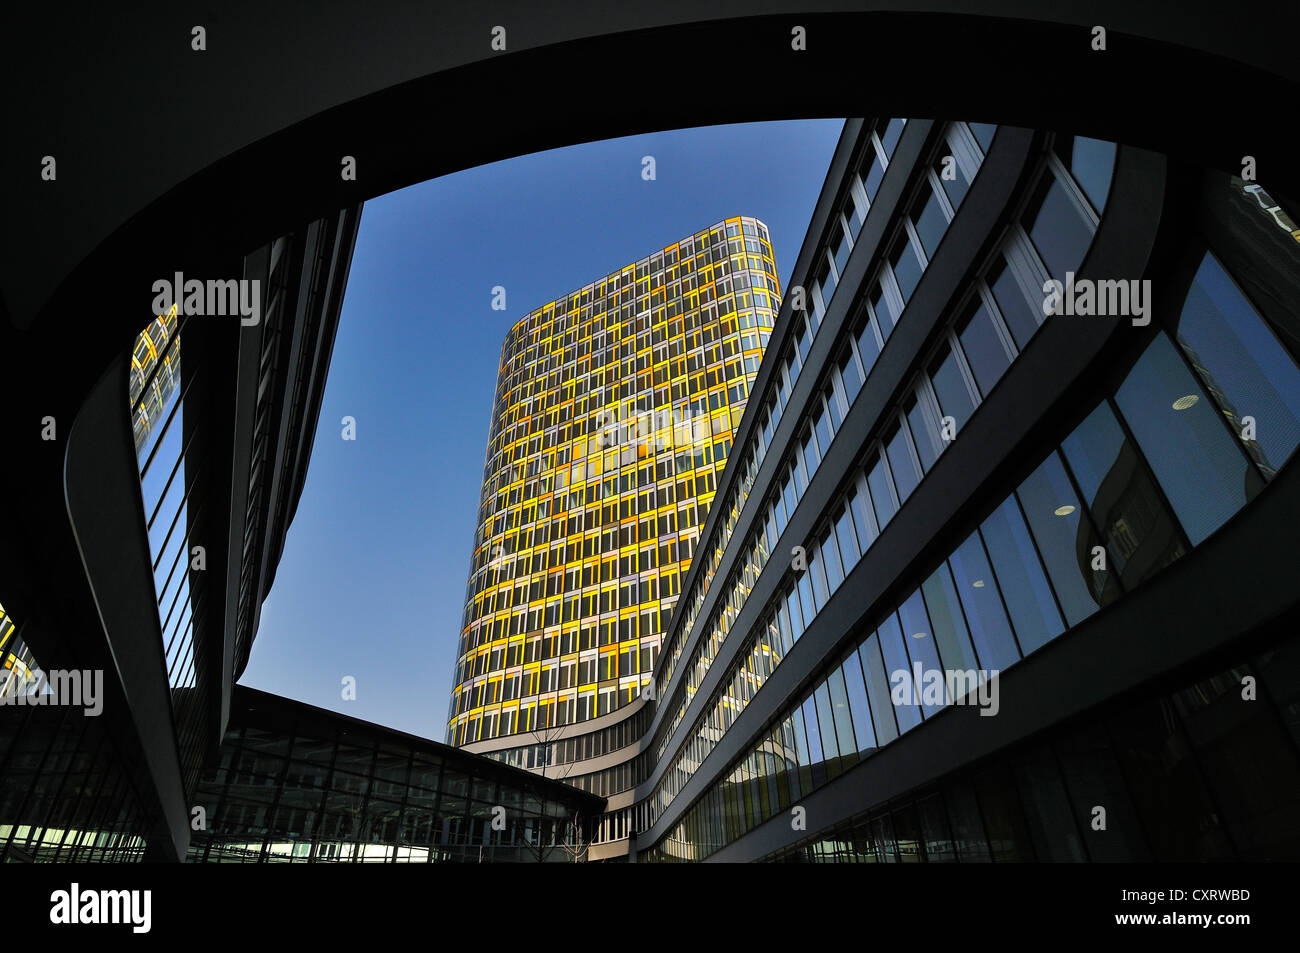 The new ADAC headquarters, German automobile club, Hansastrasse street 23-25, Munich, Bavaria, Germany, Europe - Stock Image